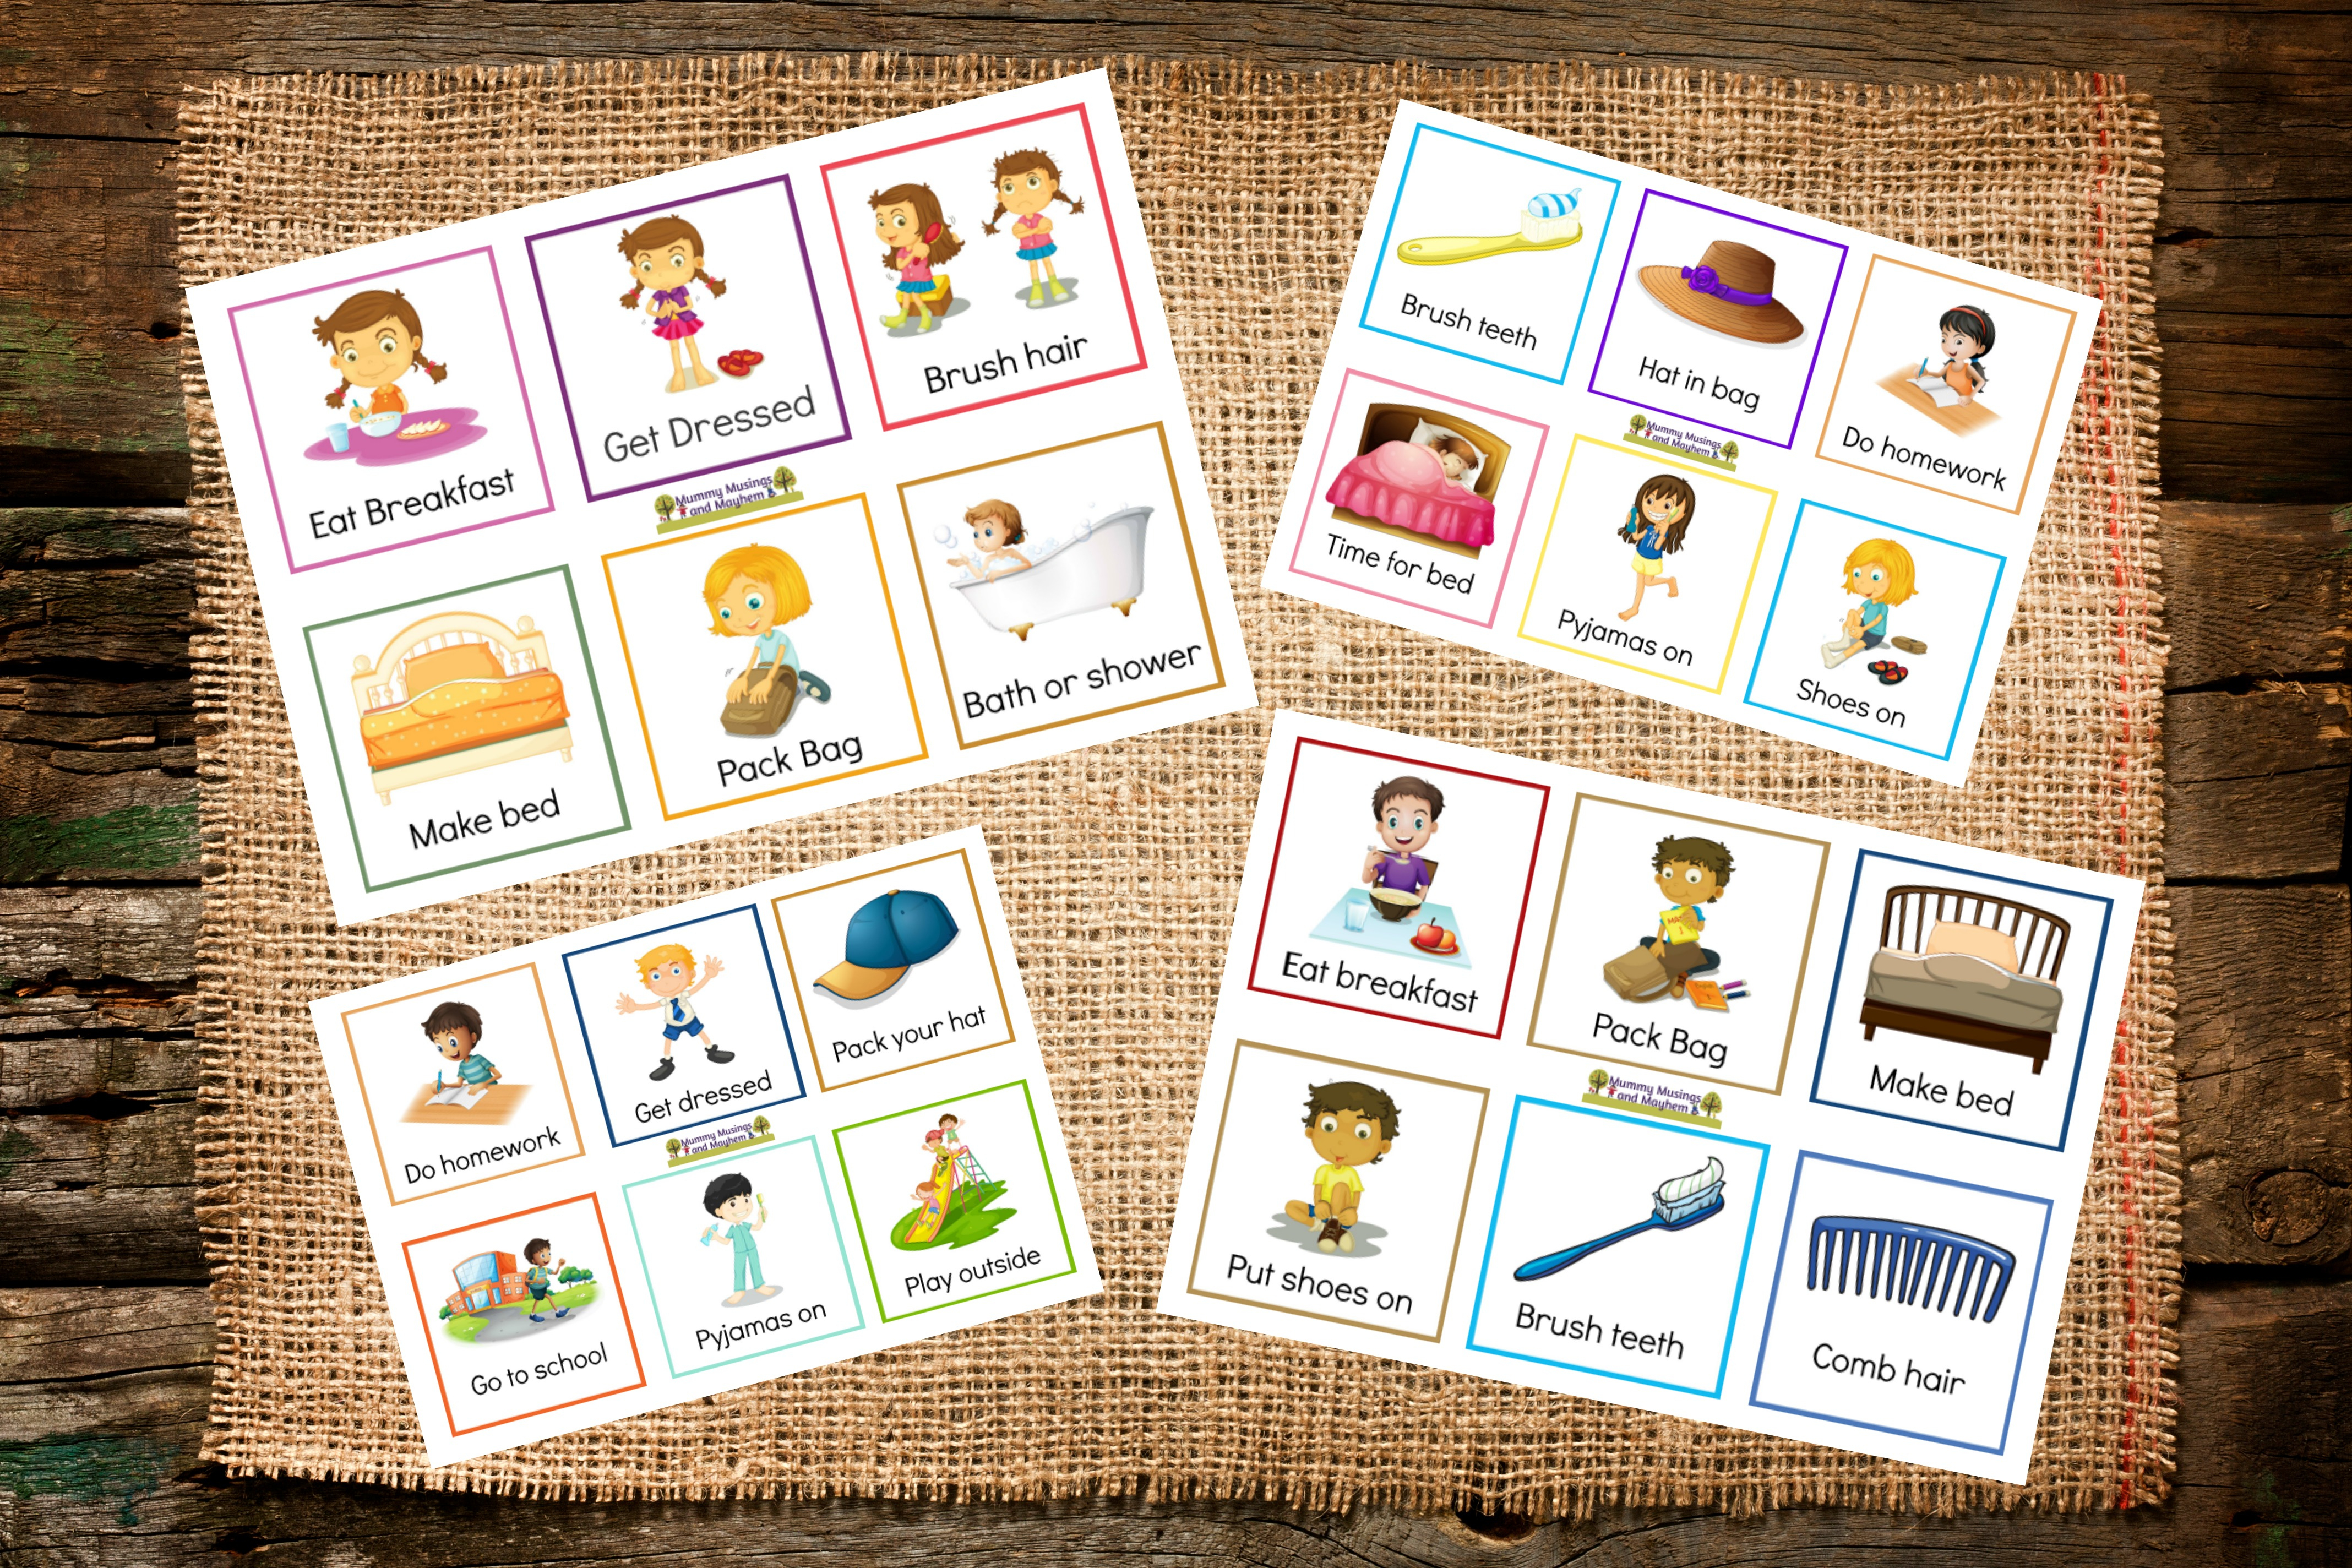 Back To School Routines - Free Printable Cards To Make It Easier - Free Printable Picture Cards